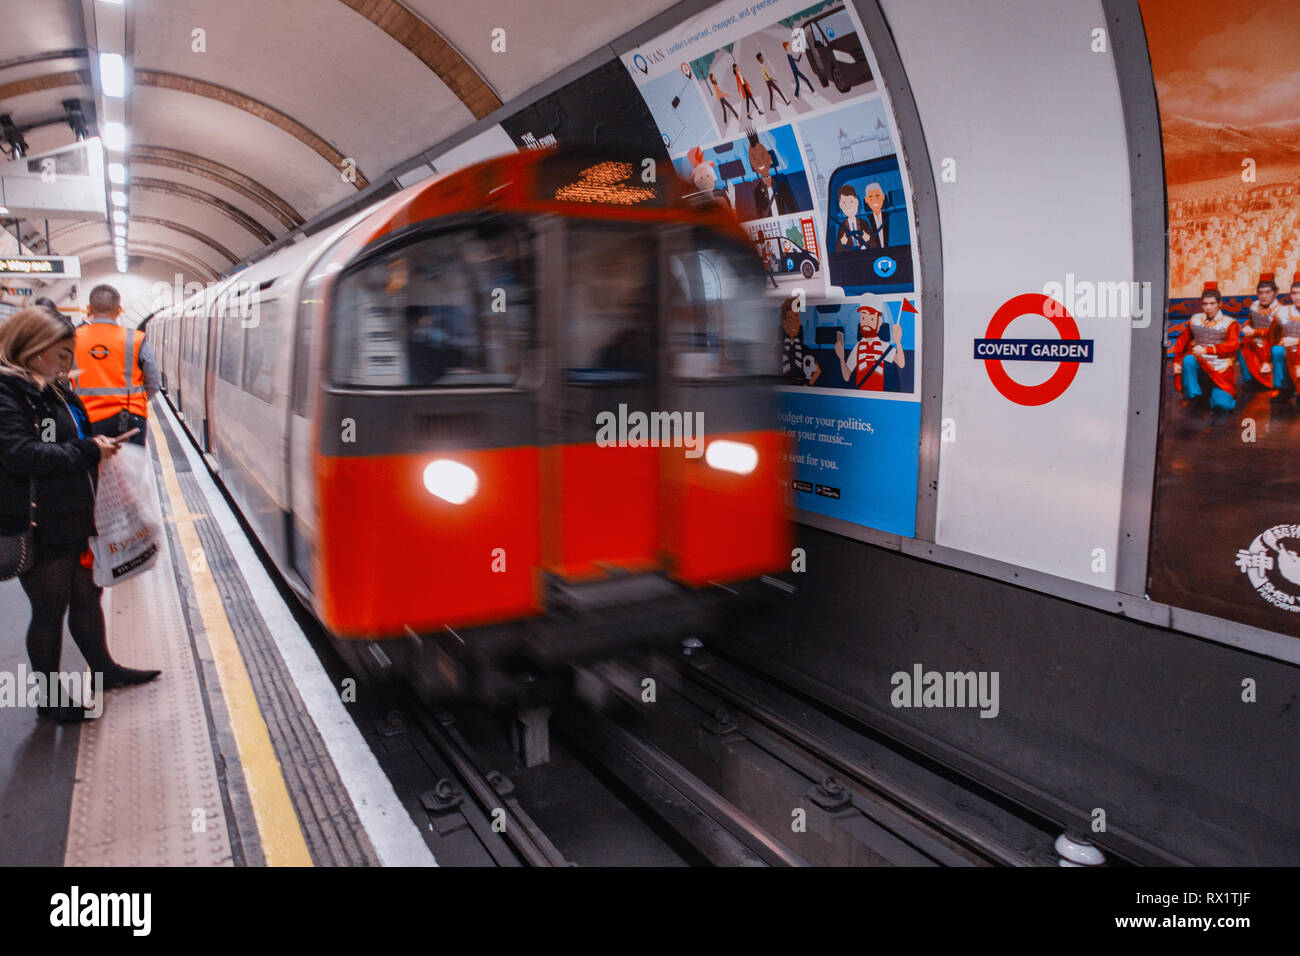 Female Commuter waits for the approaching tube train on london underground track passing ad poster - Stock Image